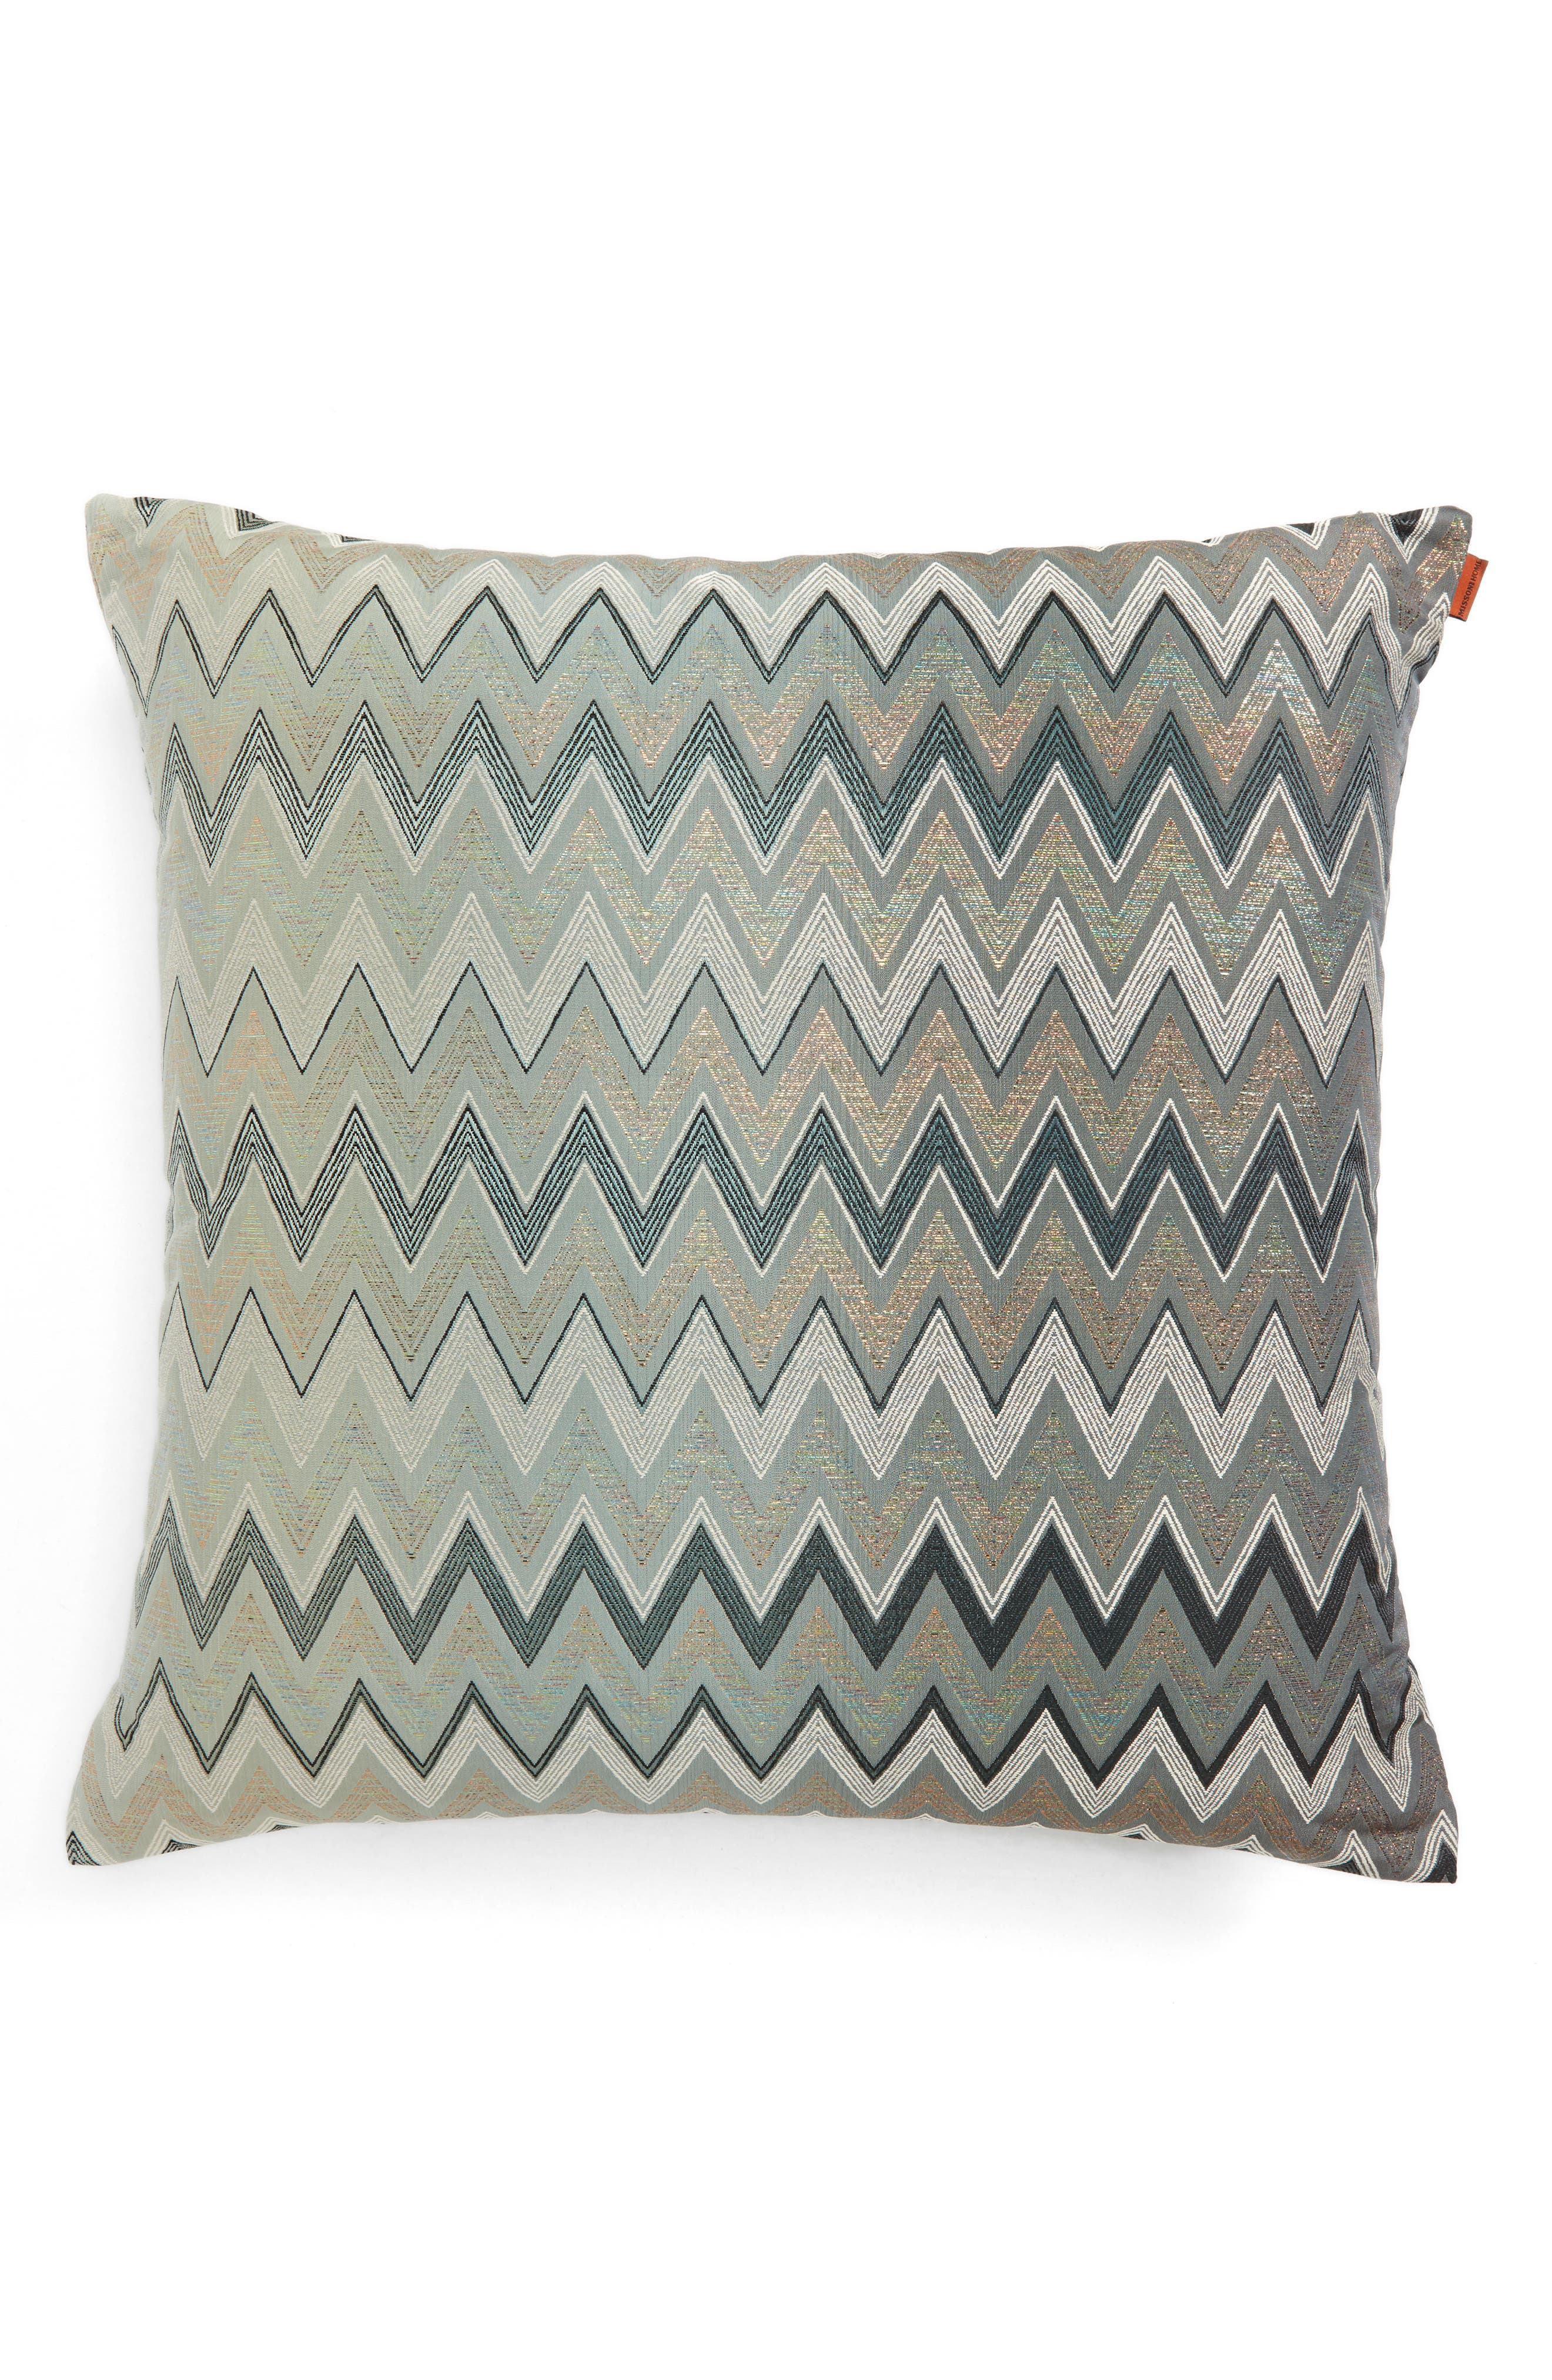 Taipei Accent Pillow,                             Alternate thumbnail 2, color,                             MULTI BLUE